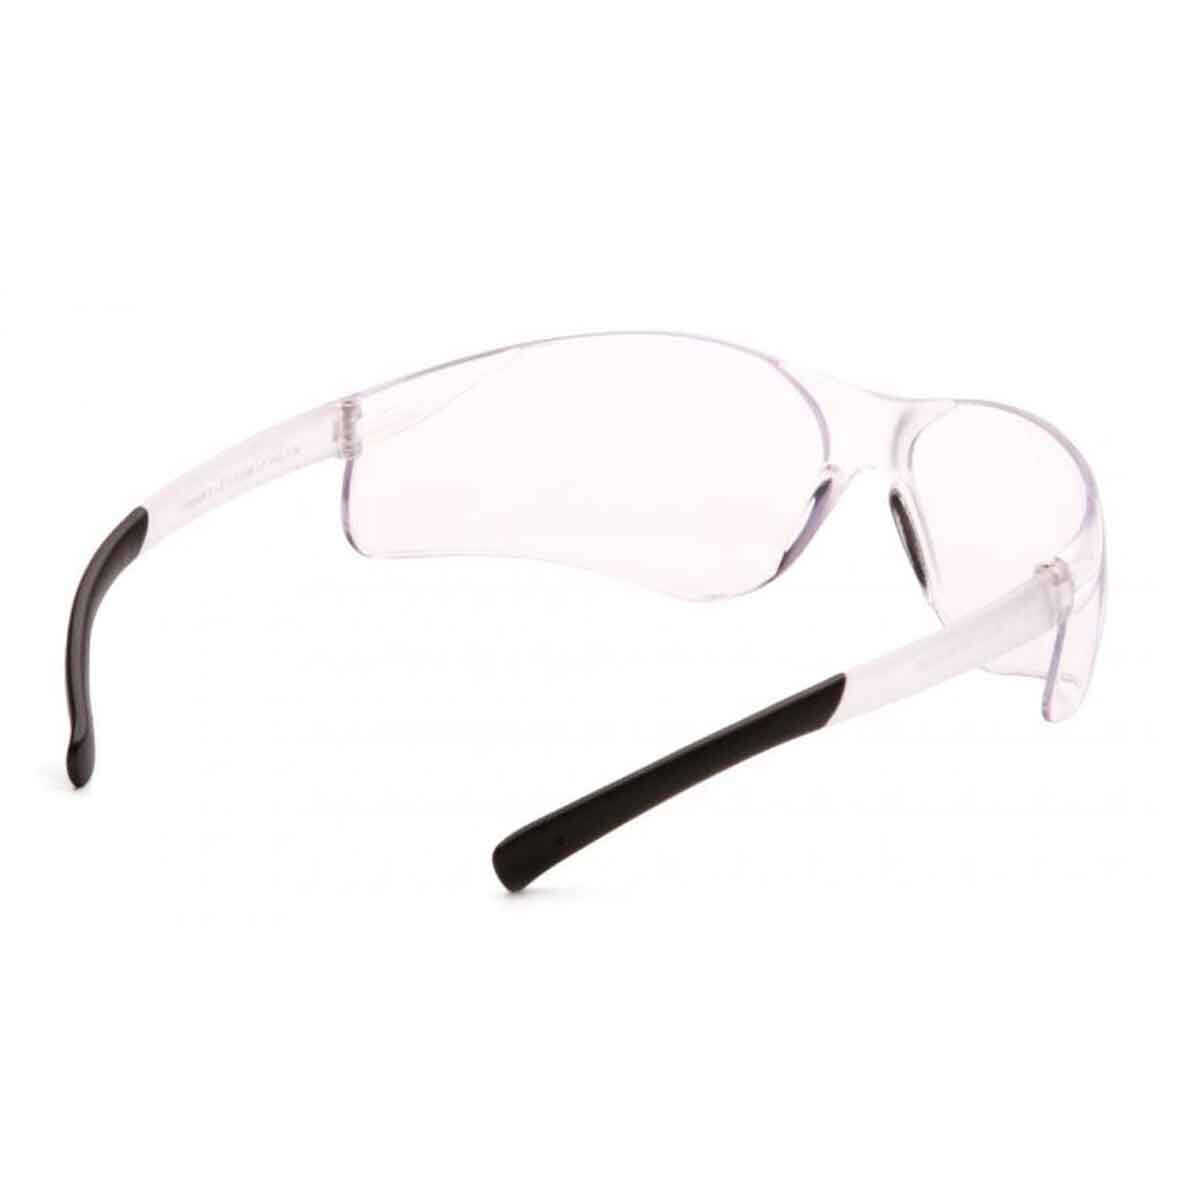 Pyramex Ztek Clear Eye Protection Safety Glasses Rear View